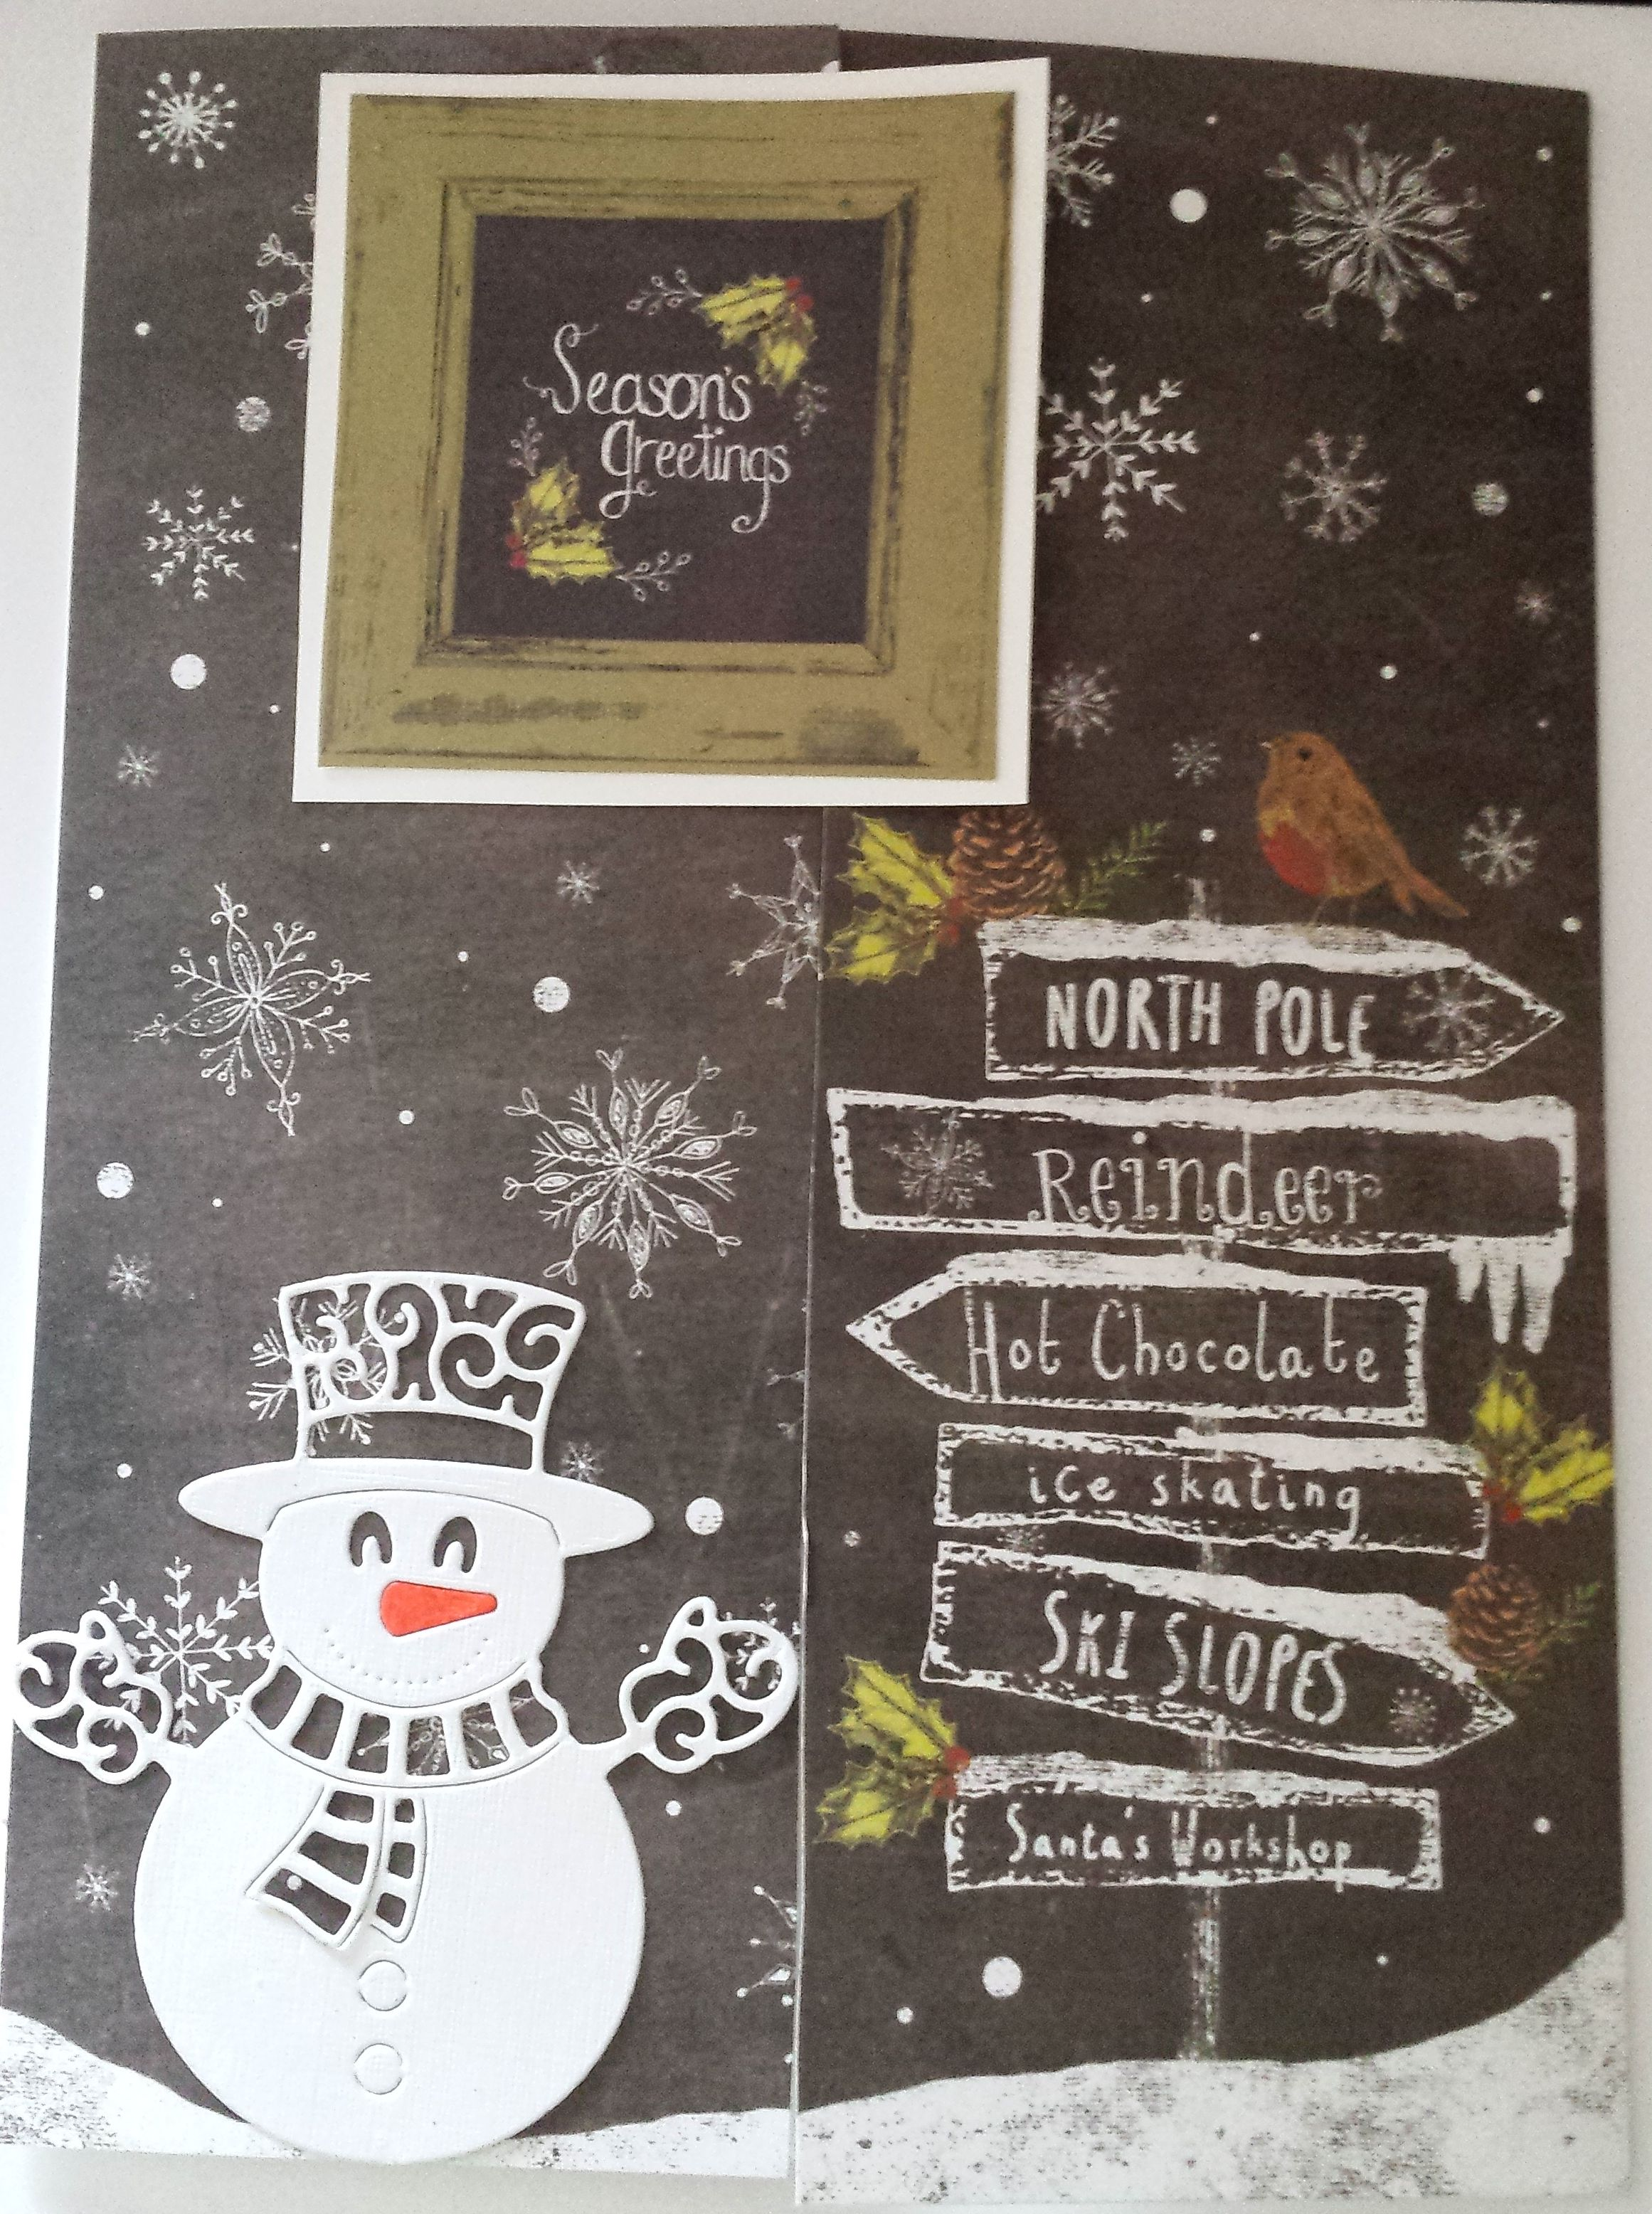 Snowman Seasons Greetings A5 gatefold card designed using